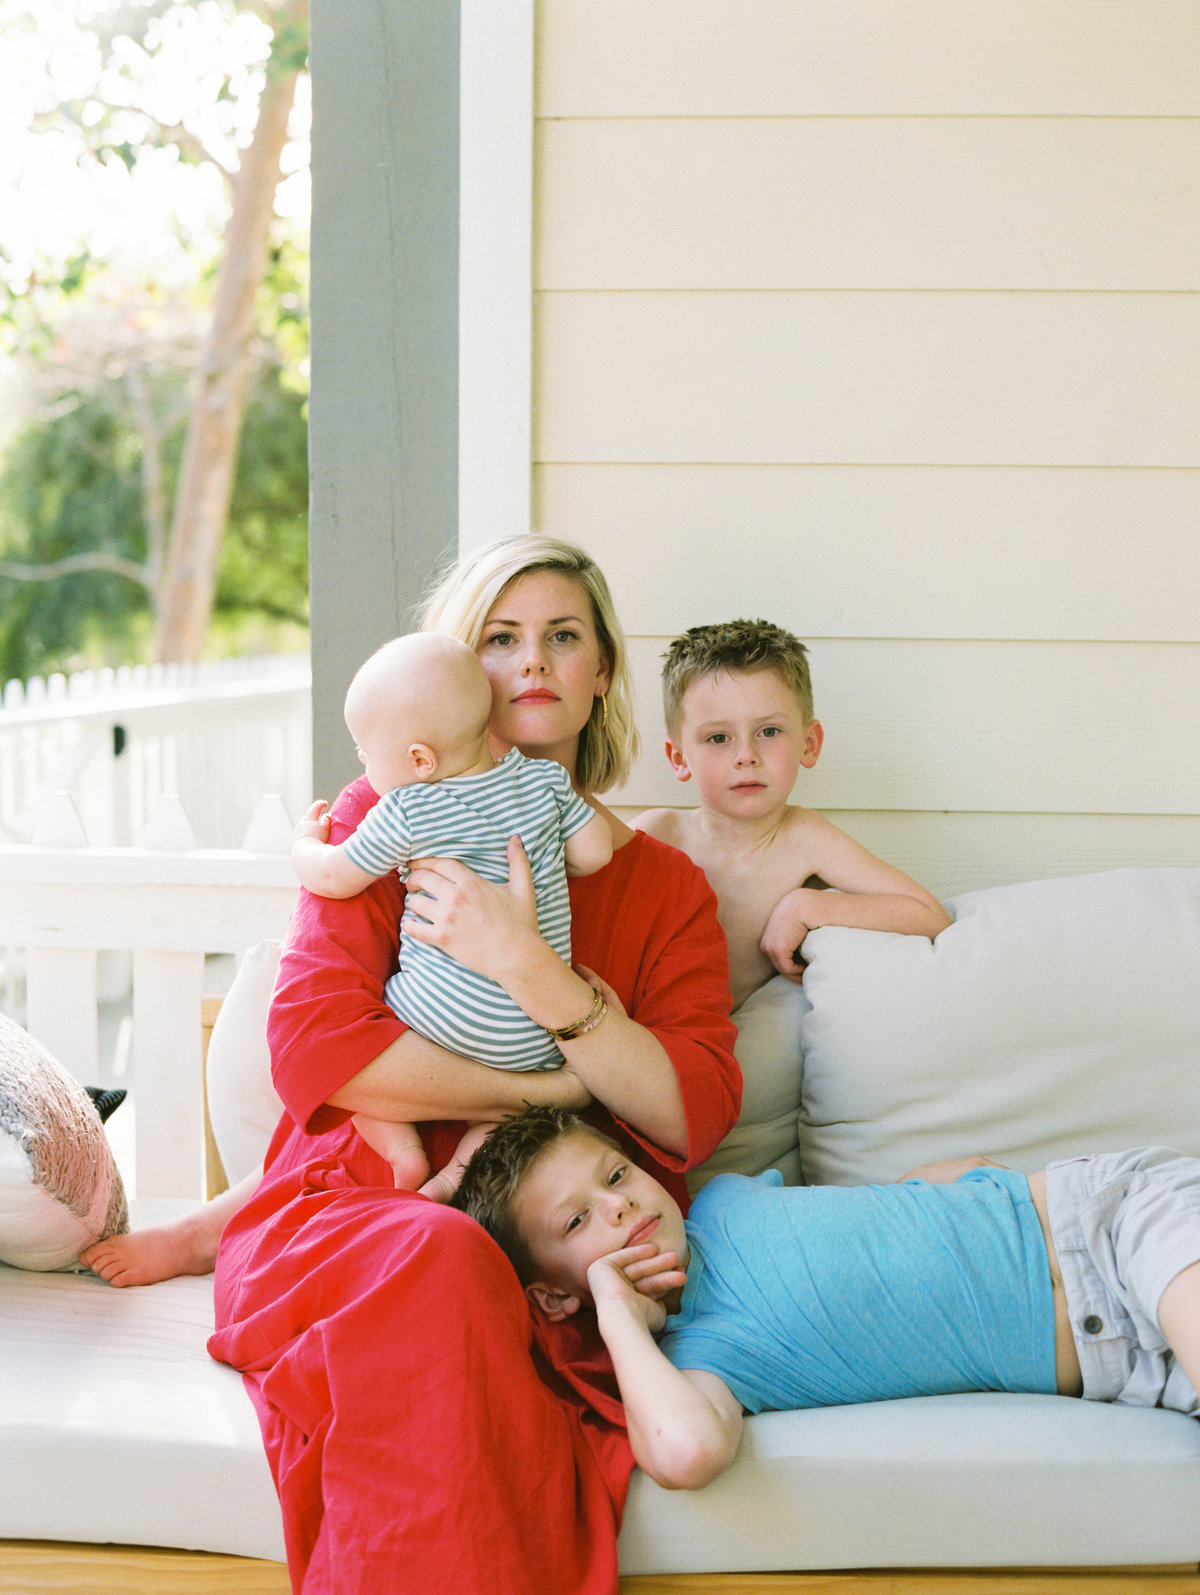 charleston-lifestyle-family-portrait-photographer-philip-casey-049